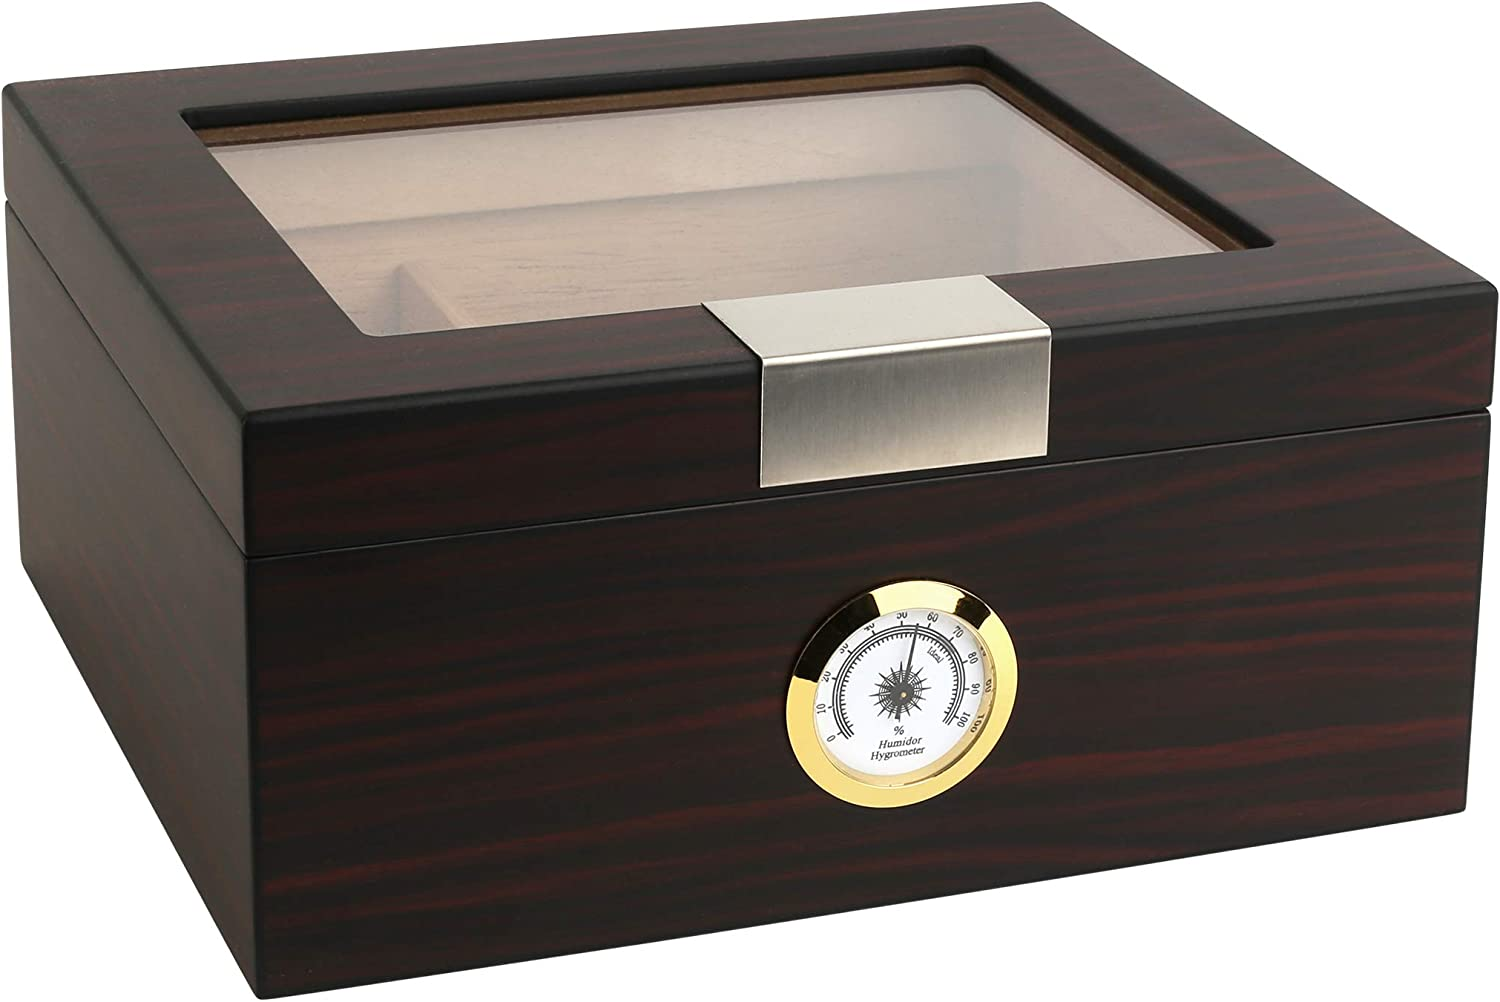 Mantello Ebony Glass-Top Cigar Humidor - Wooden Humidifier Box for Cigars with Hygrometer, Cedar Divider, Packets Holder - Humidity-Controlled Spanish Cedar Storage Container - 25-50 Capacity, 10x8 In